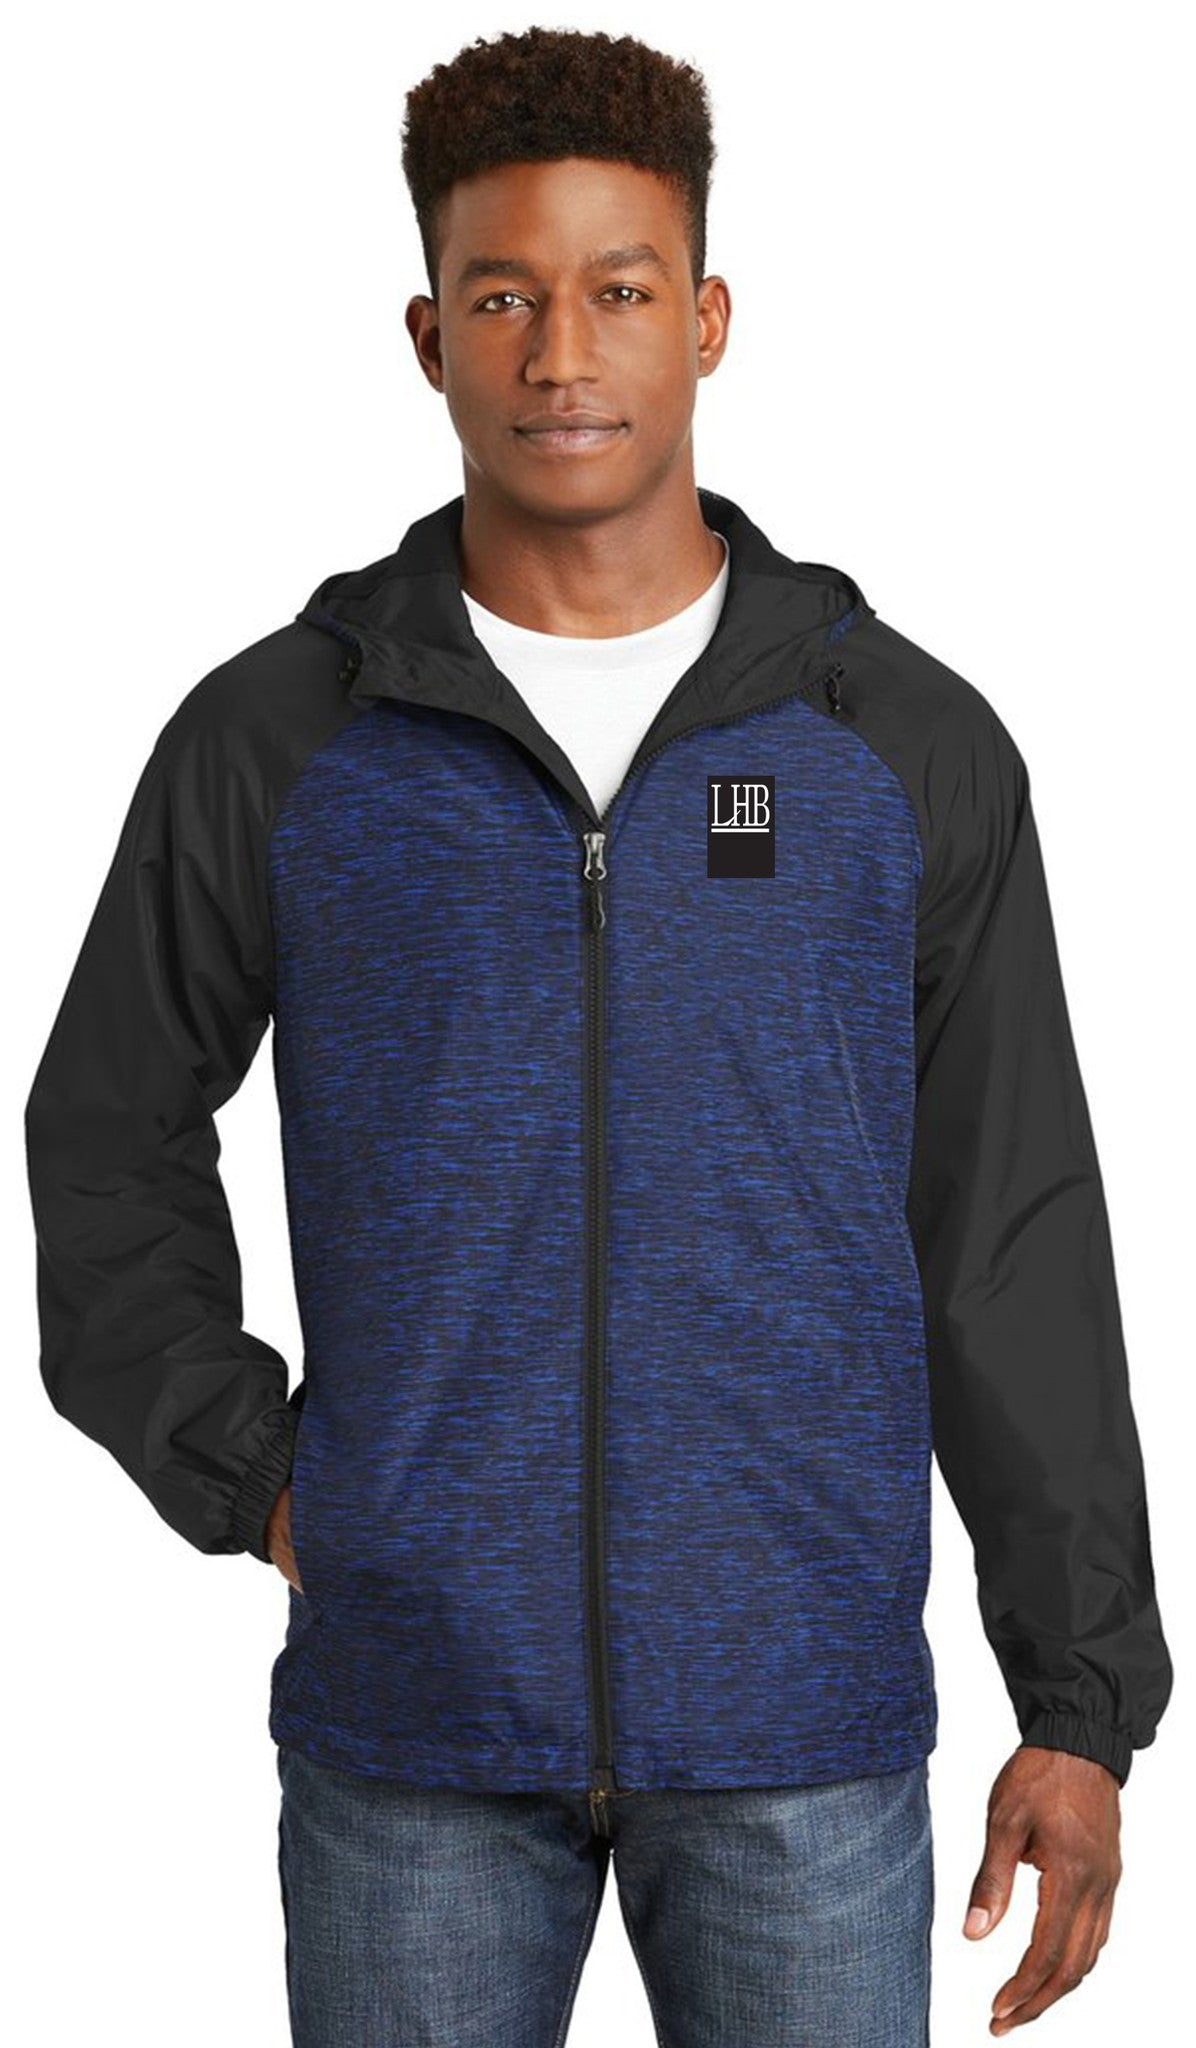 Sport-Tek® Heather Colorblock Raglan Hooded Wind Jacket - Men's - #JST40